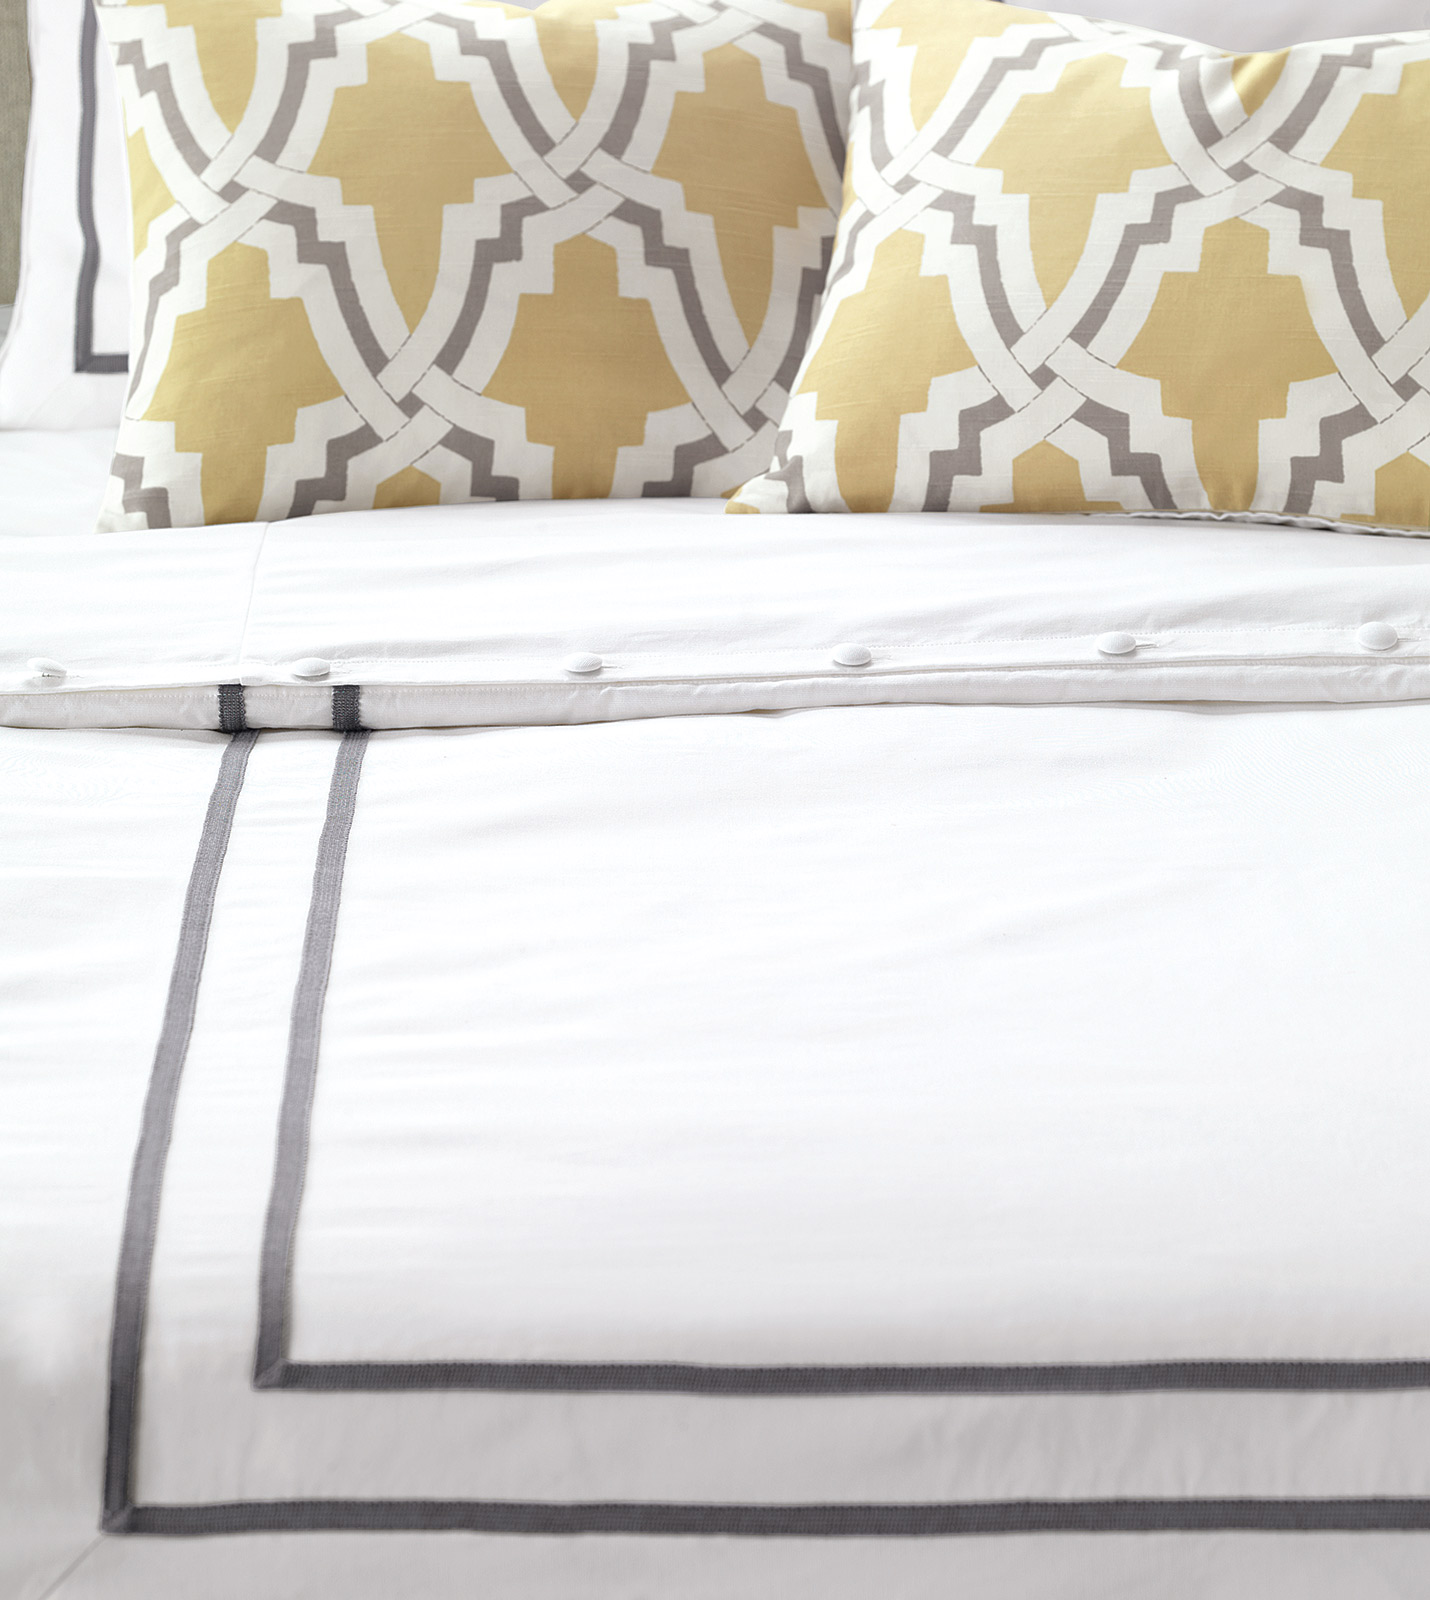 autry white duvet cover and comforter davis duvet cover decorative